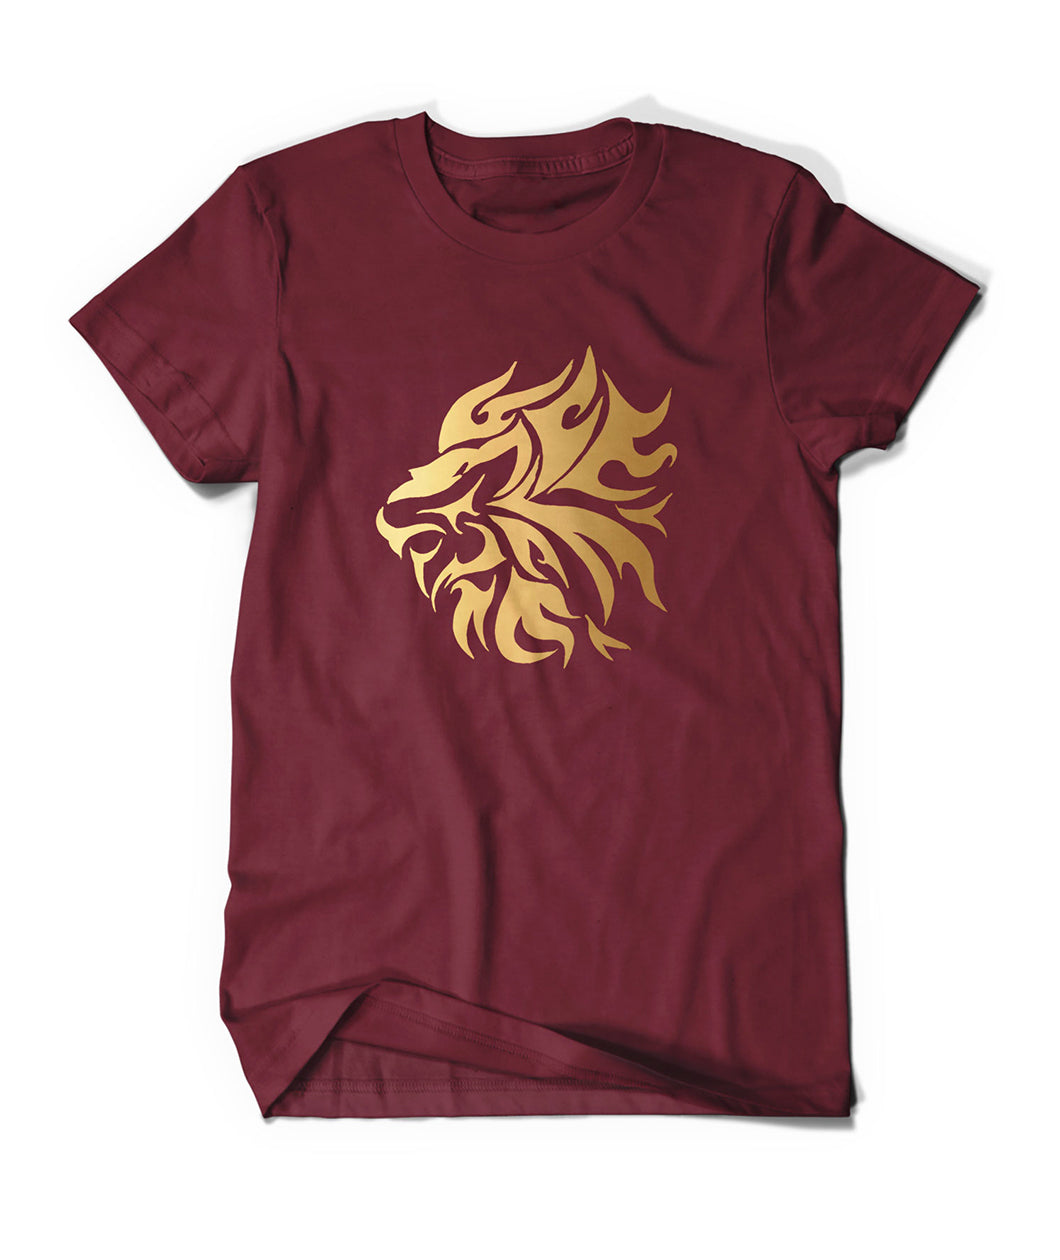 Lion Foil Printed Shirt